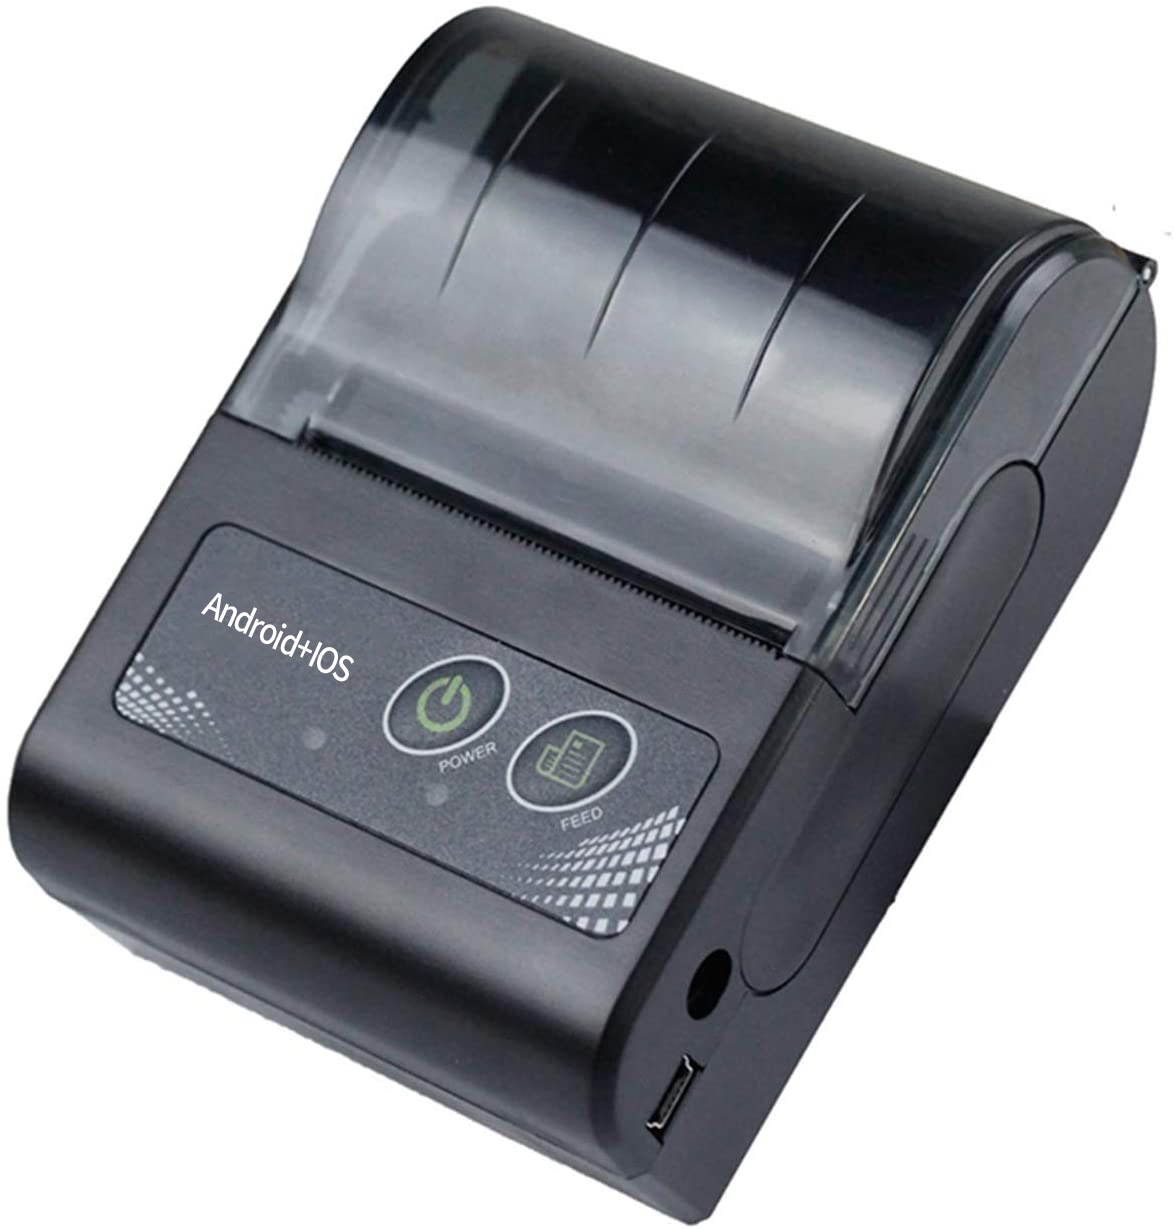 58mm Thermal Receipt Printer Portable Mini Wireless Thermal Printer USB Receipt Bill Ticket POS Printing for iOS Android Windows